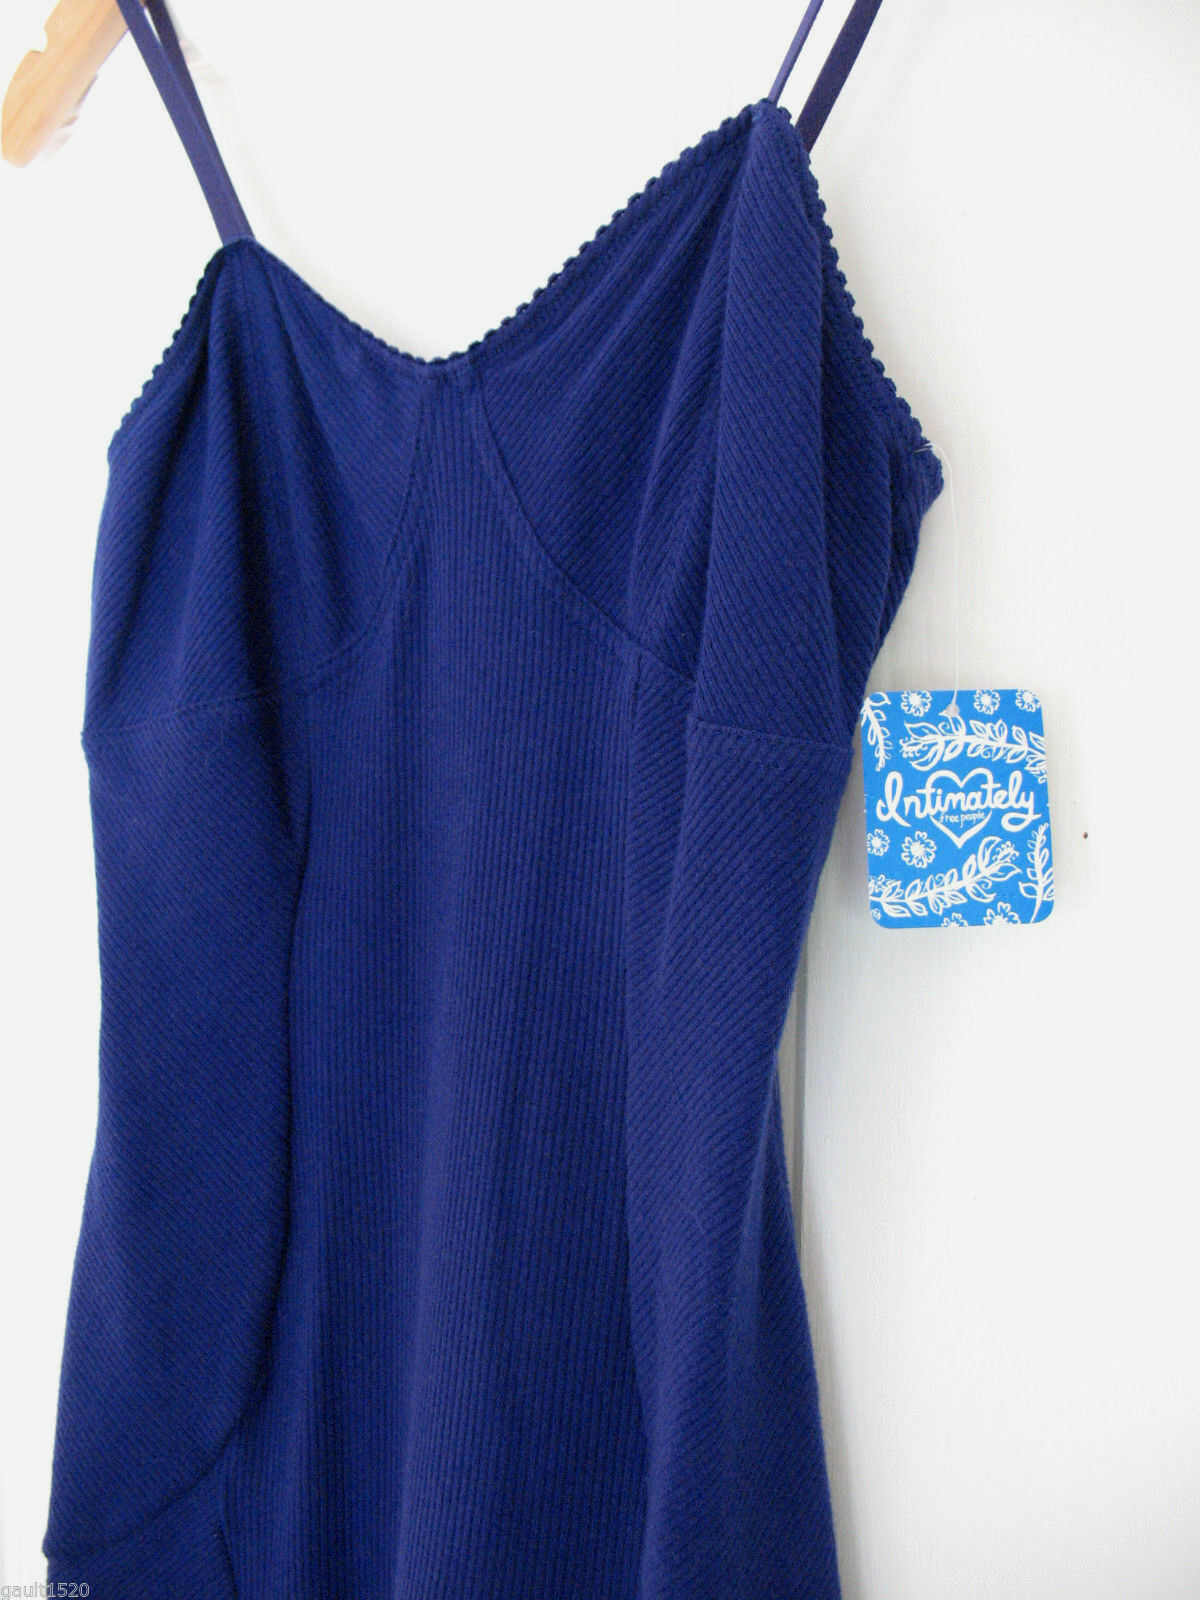 NWT Free People Intimately Sexy Periwinkle bluee Bodycon Chemise Nightie S